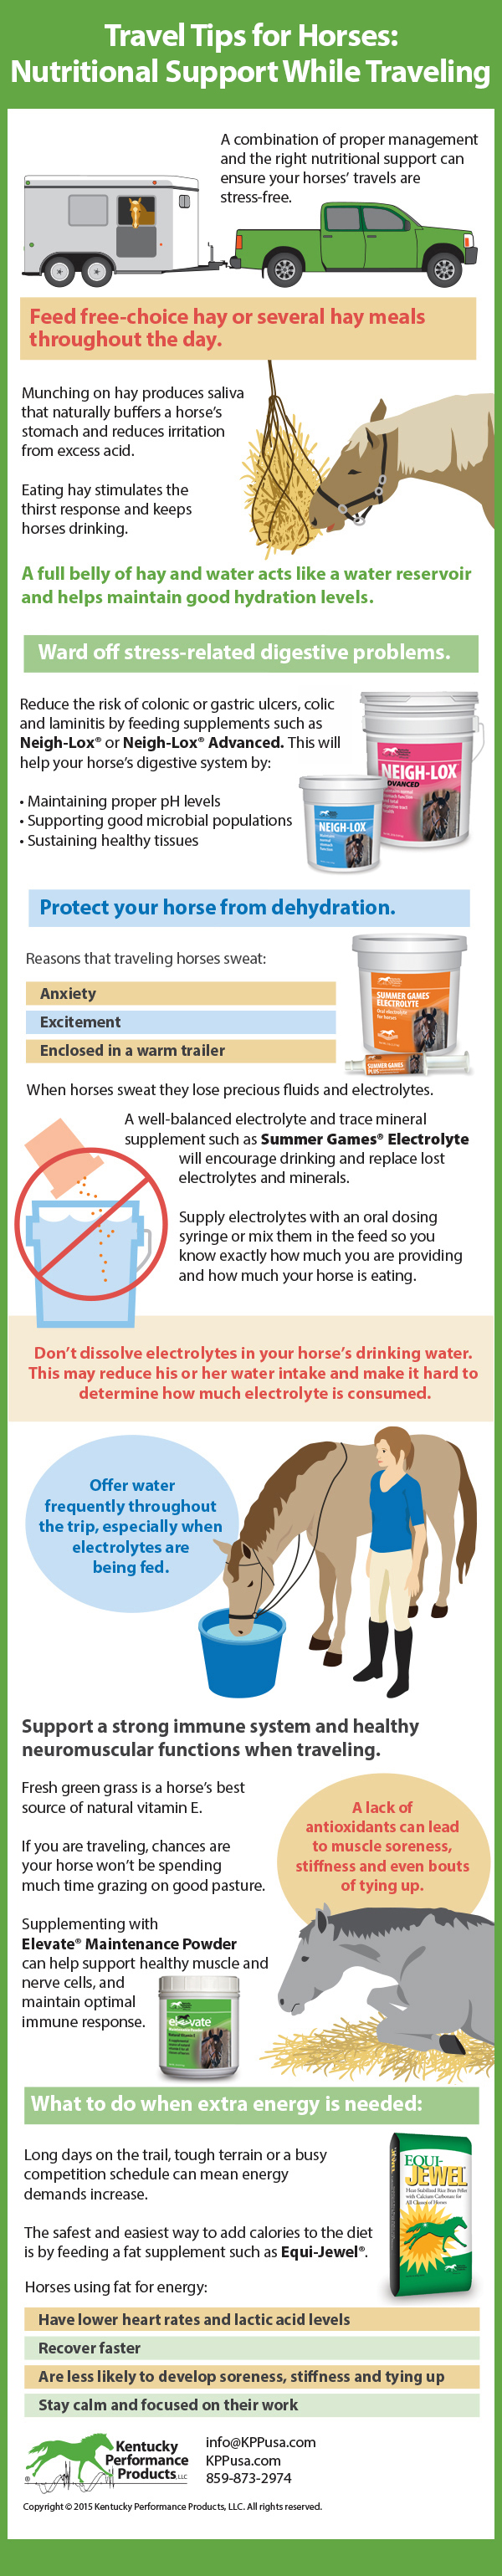 Travel-Tips-for-Horses-Part-2-Nutrional-Support-While-Traveling-15-174